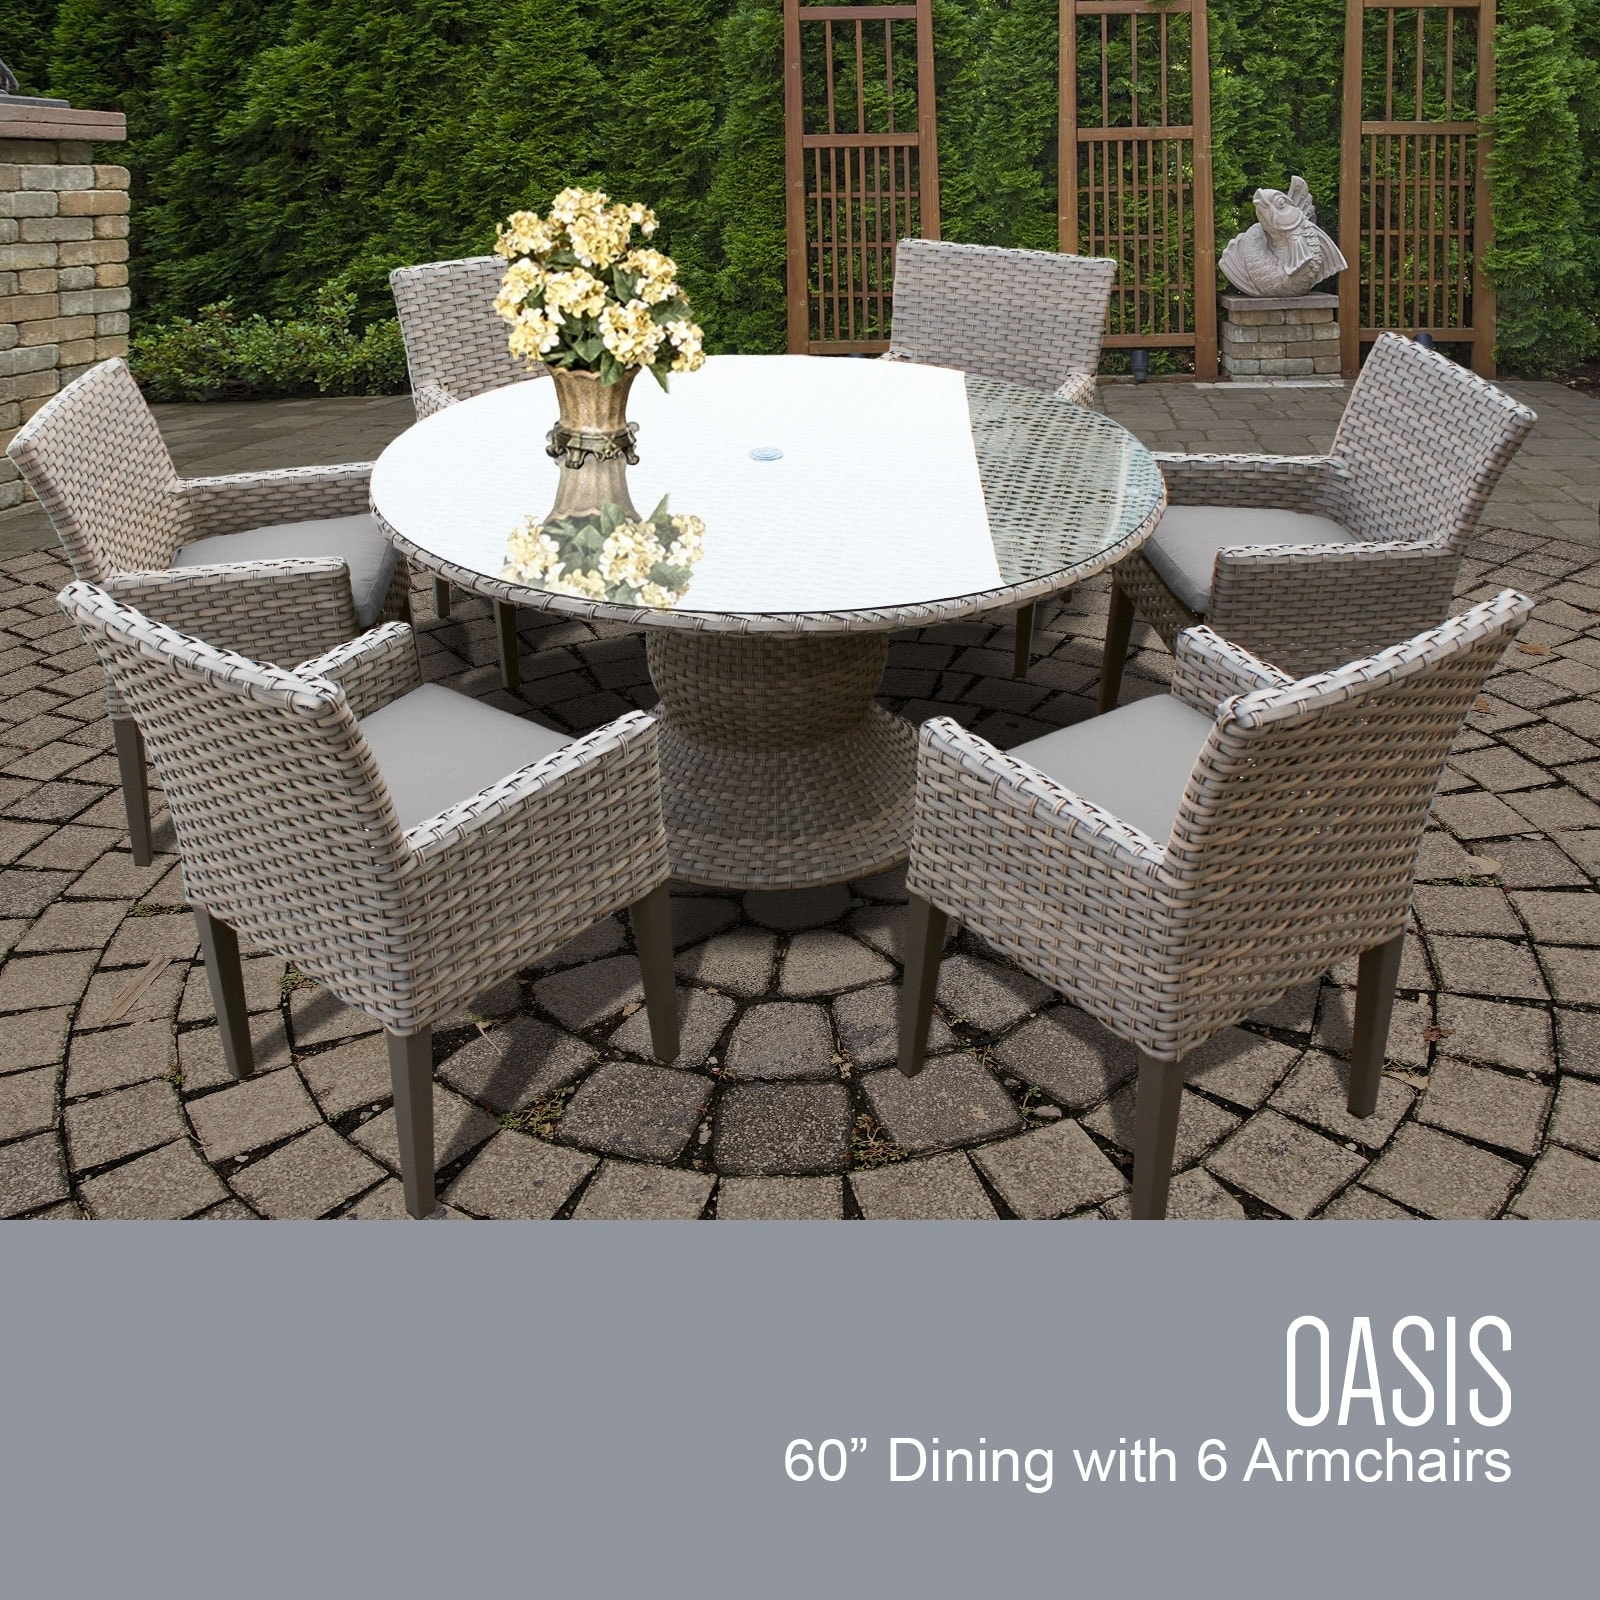 Oasis 60 Inch Outdoor Patio Dining Table With 6 Chairs W Arms Overstock 26423915 Standard